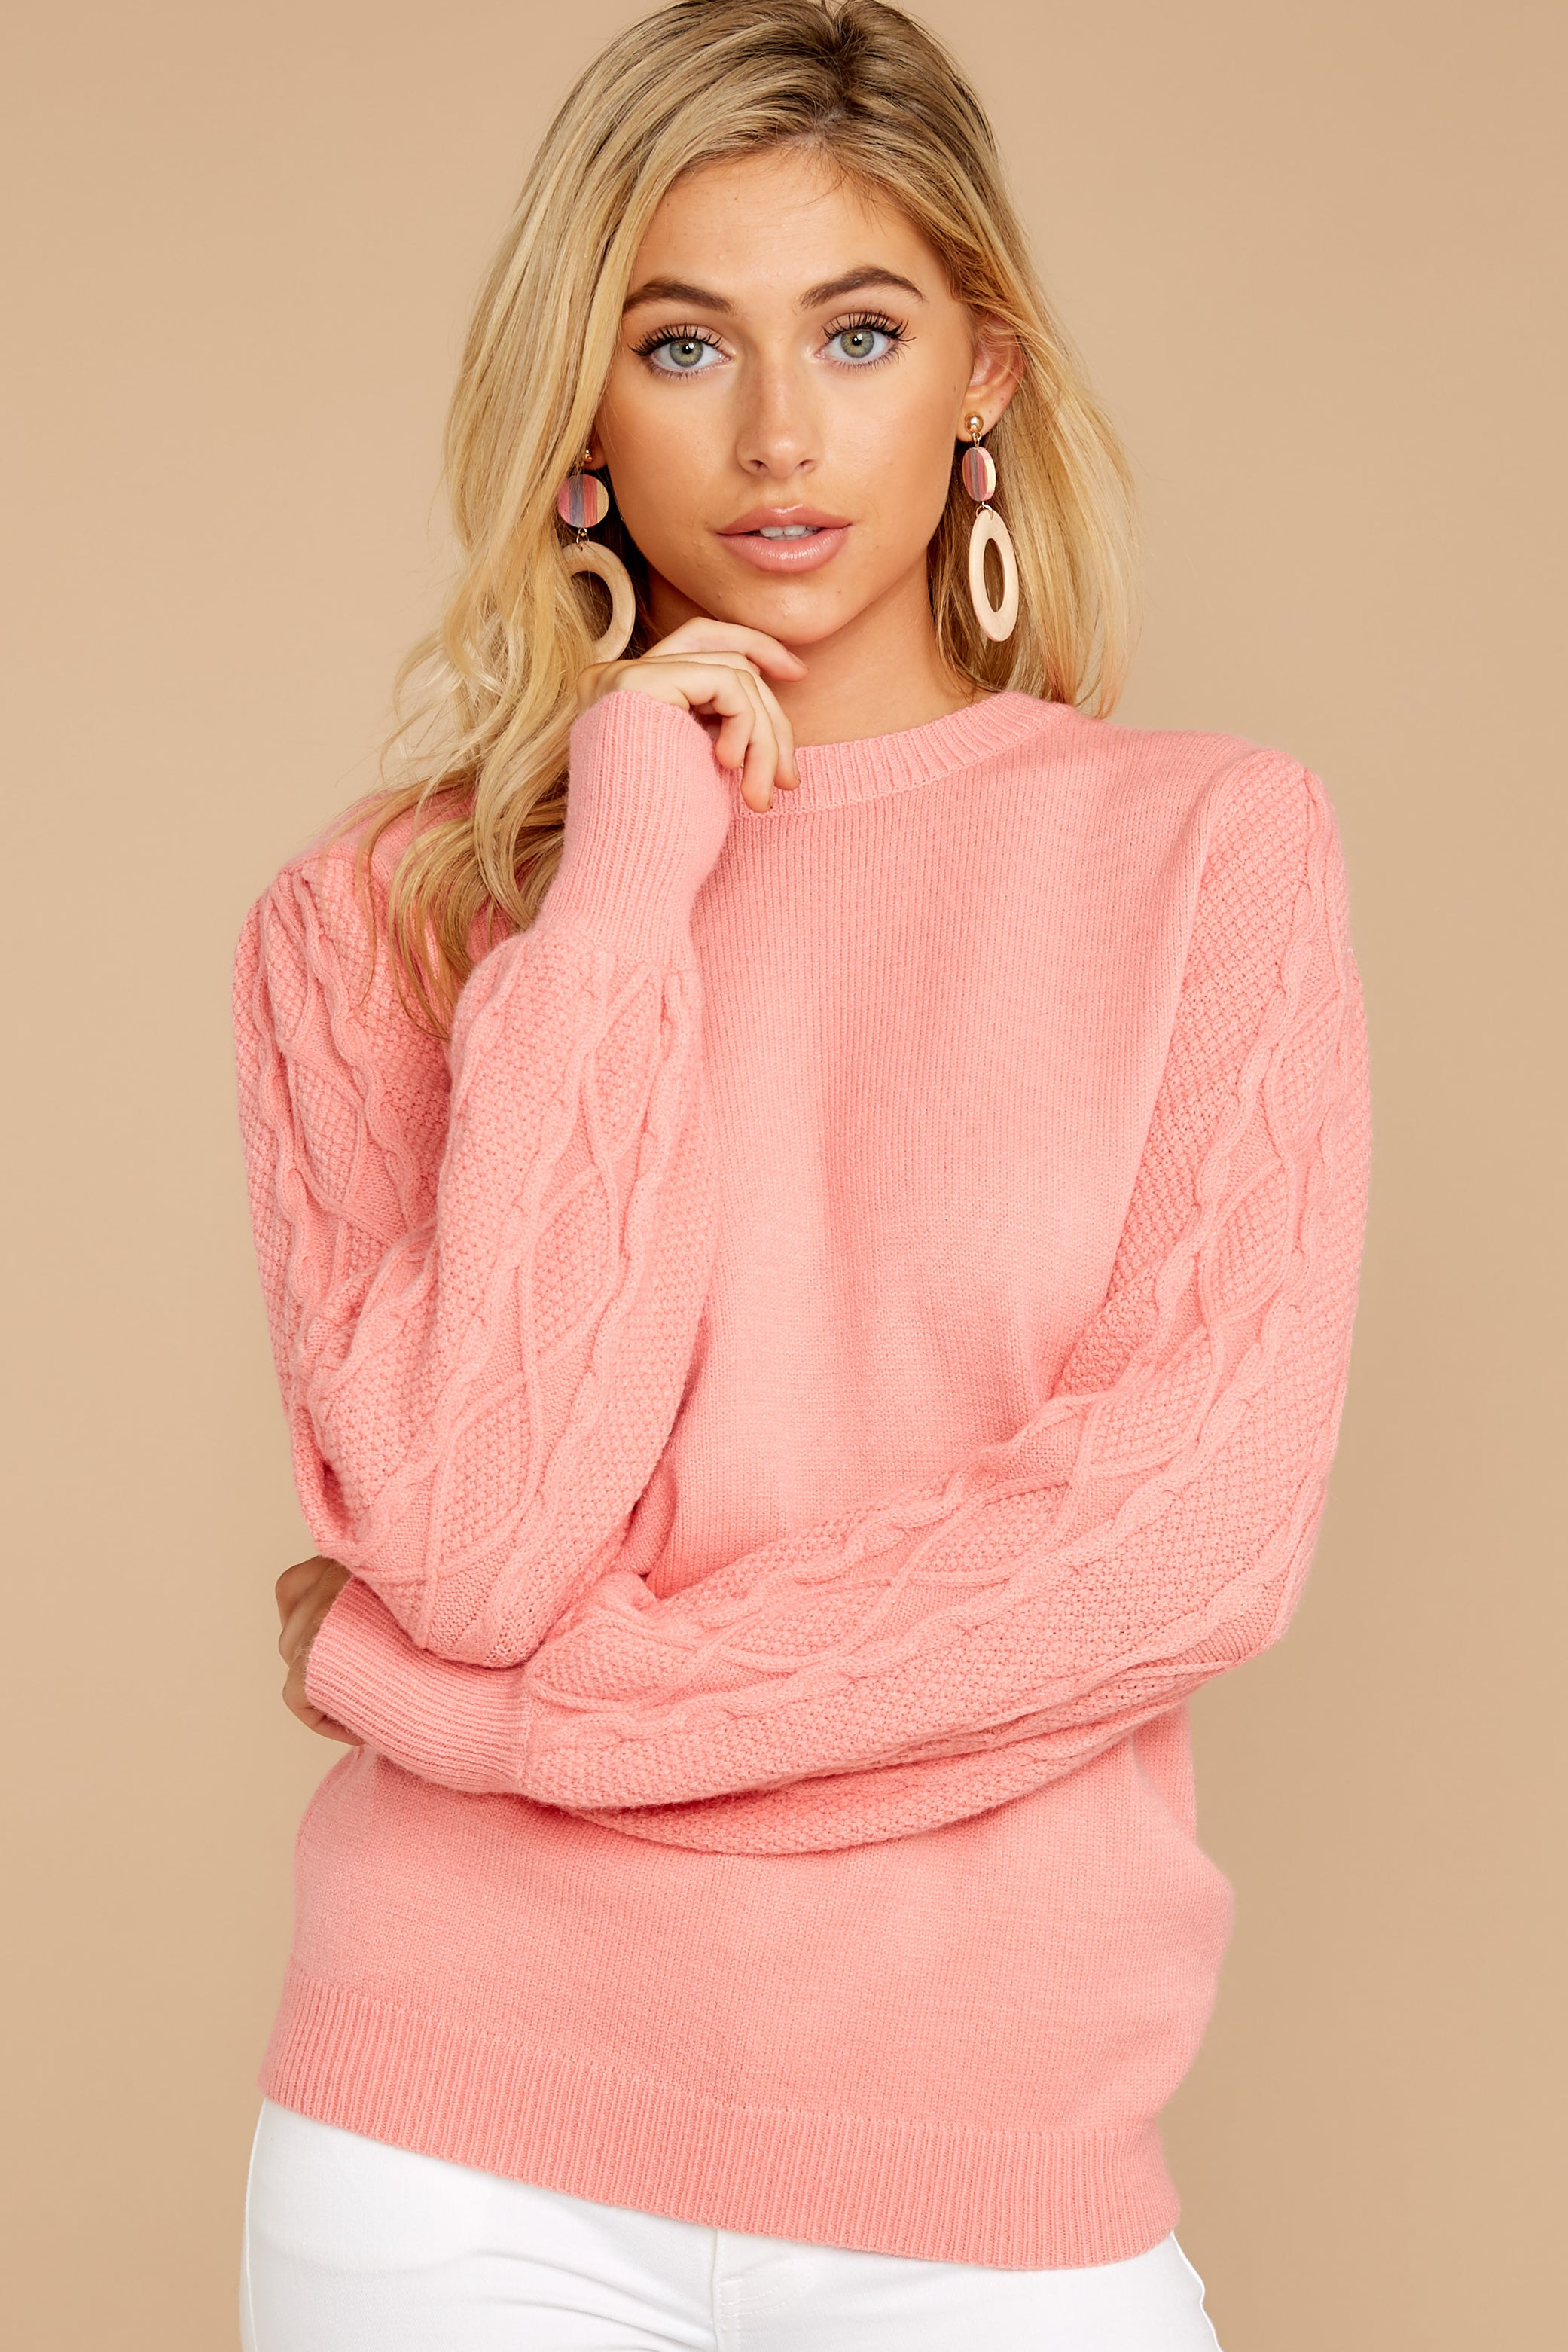 7 Wandering Through Winter Light Pink Sweater at reddressboutique.com